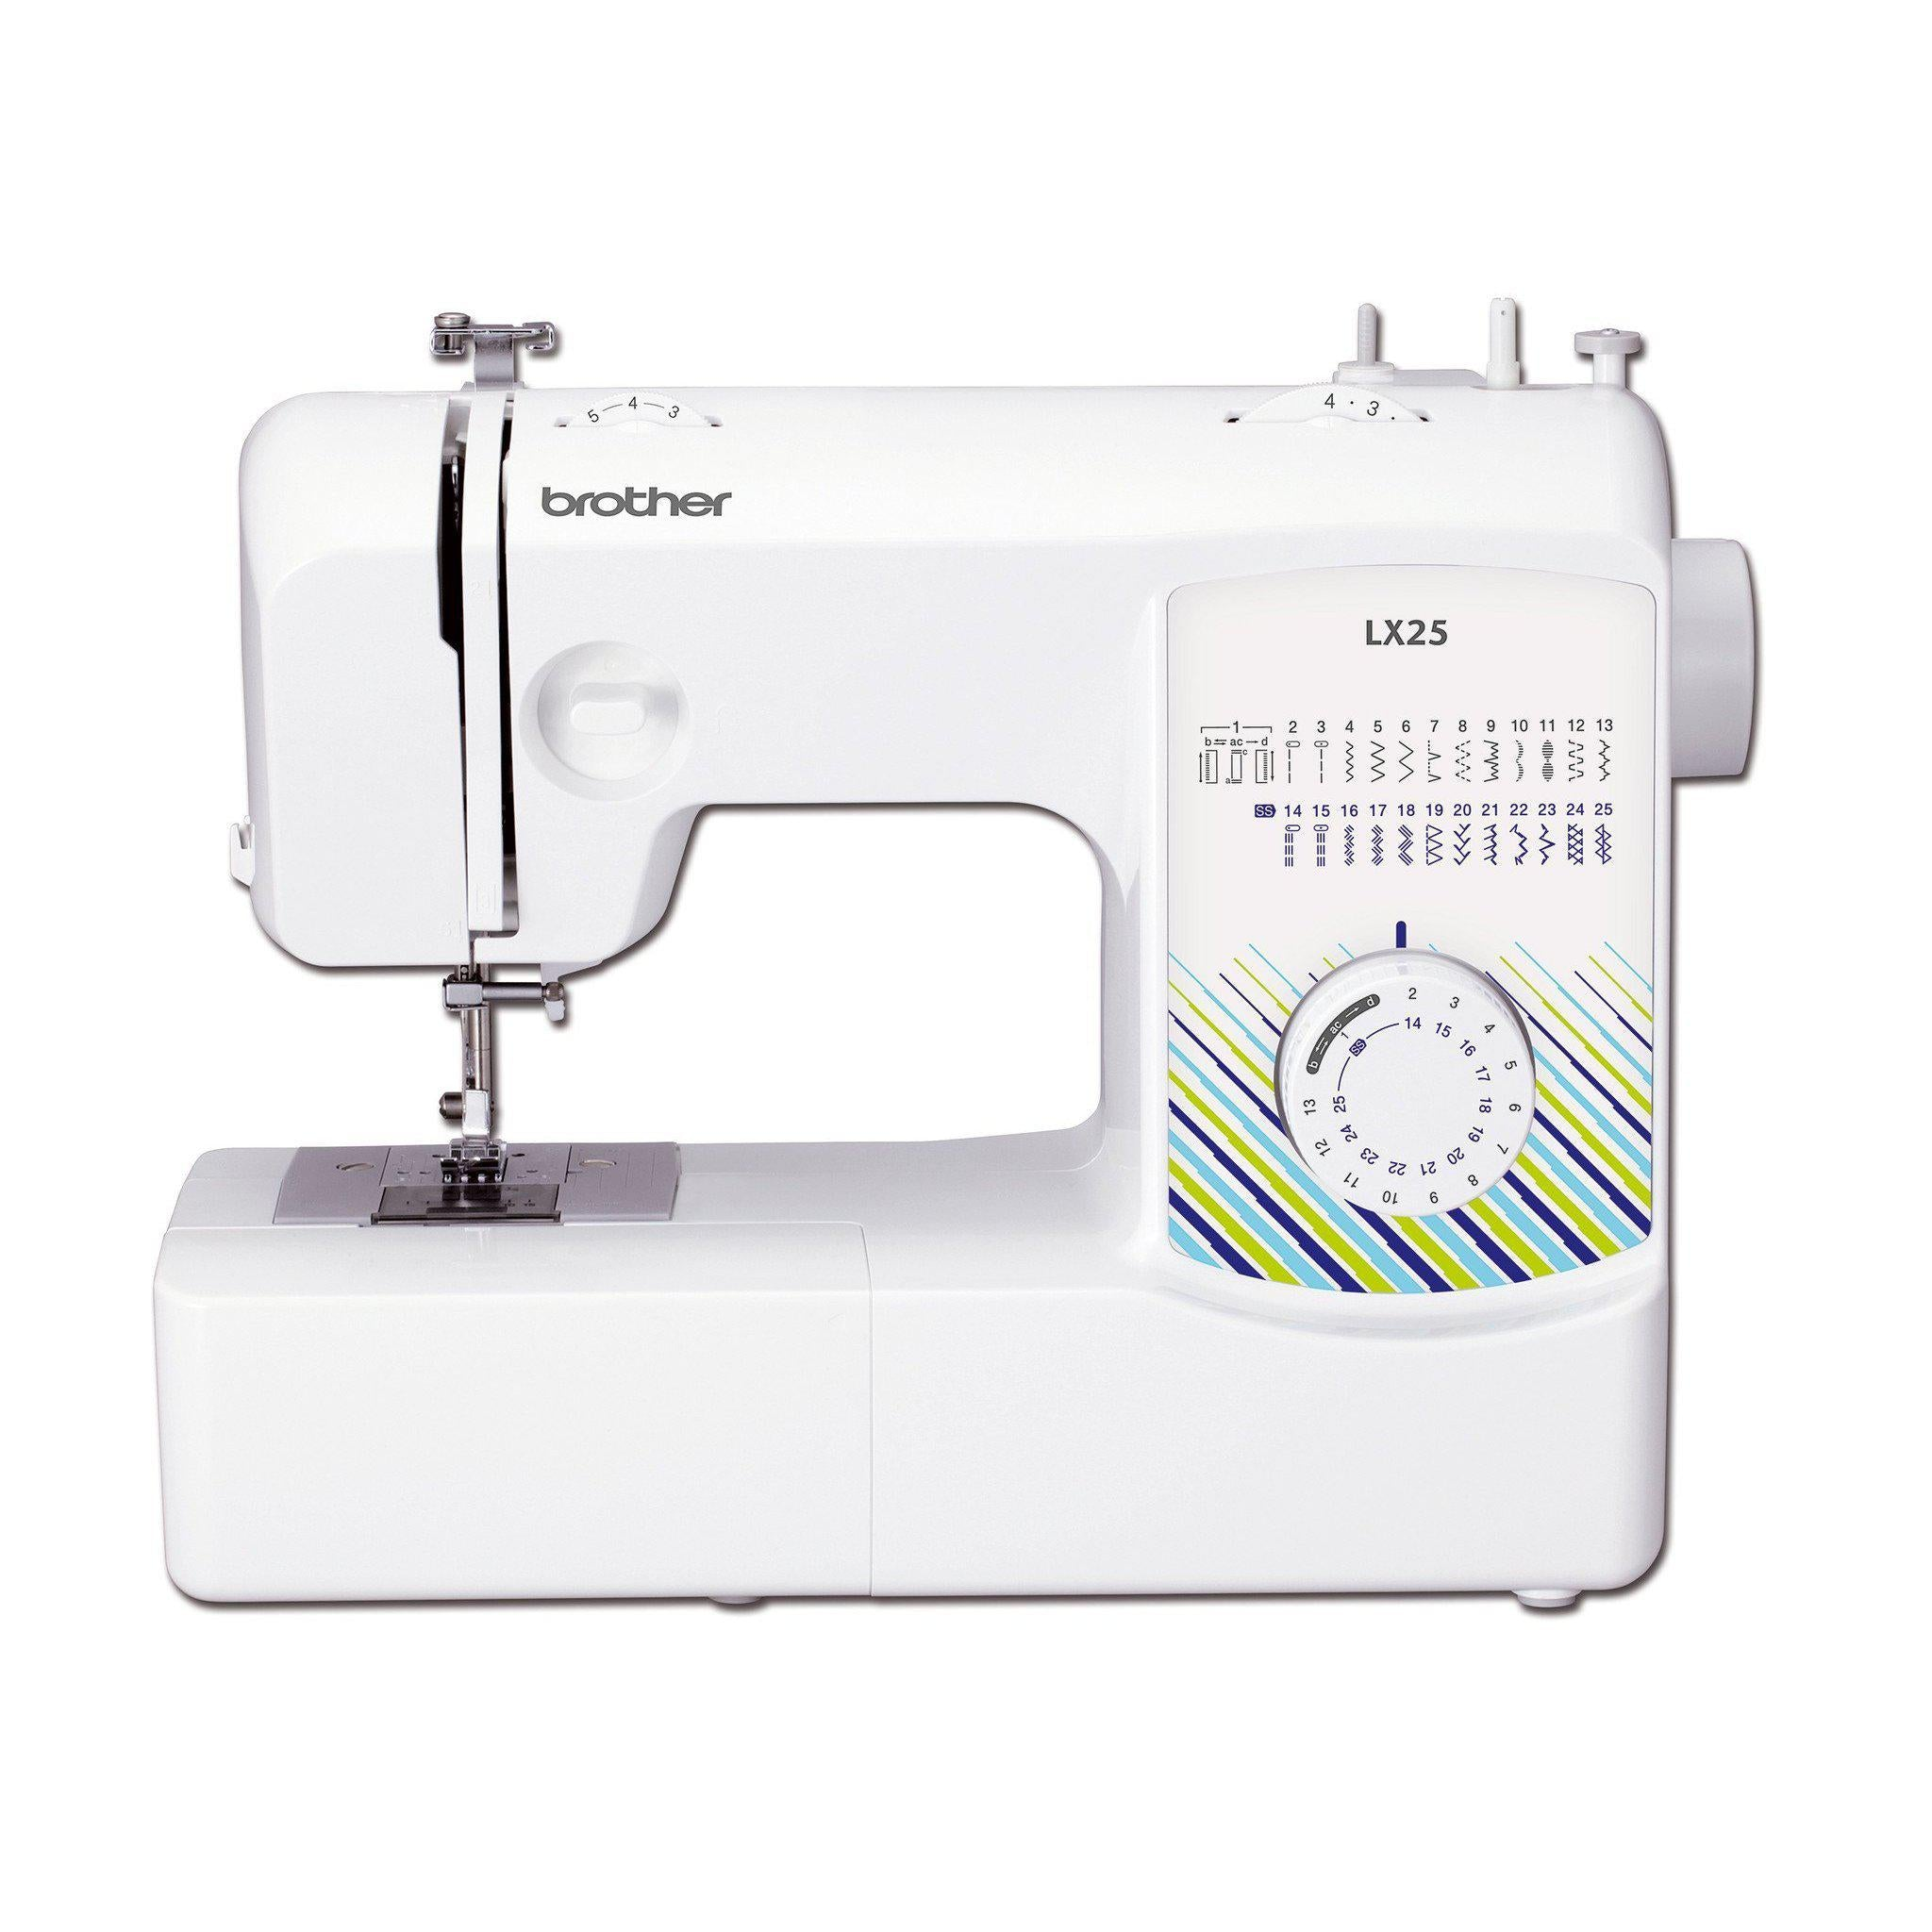 Brother LX25 Sewing Machine Brother Sewing Machines - Fabric Mouse